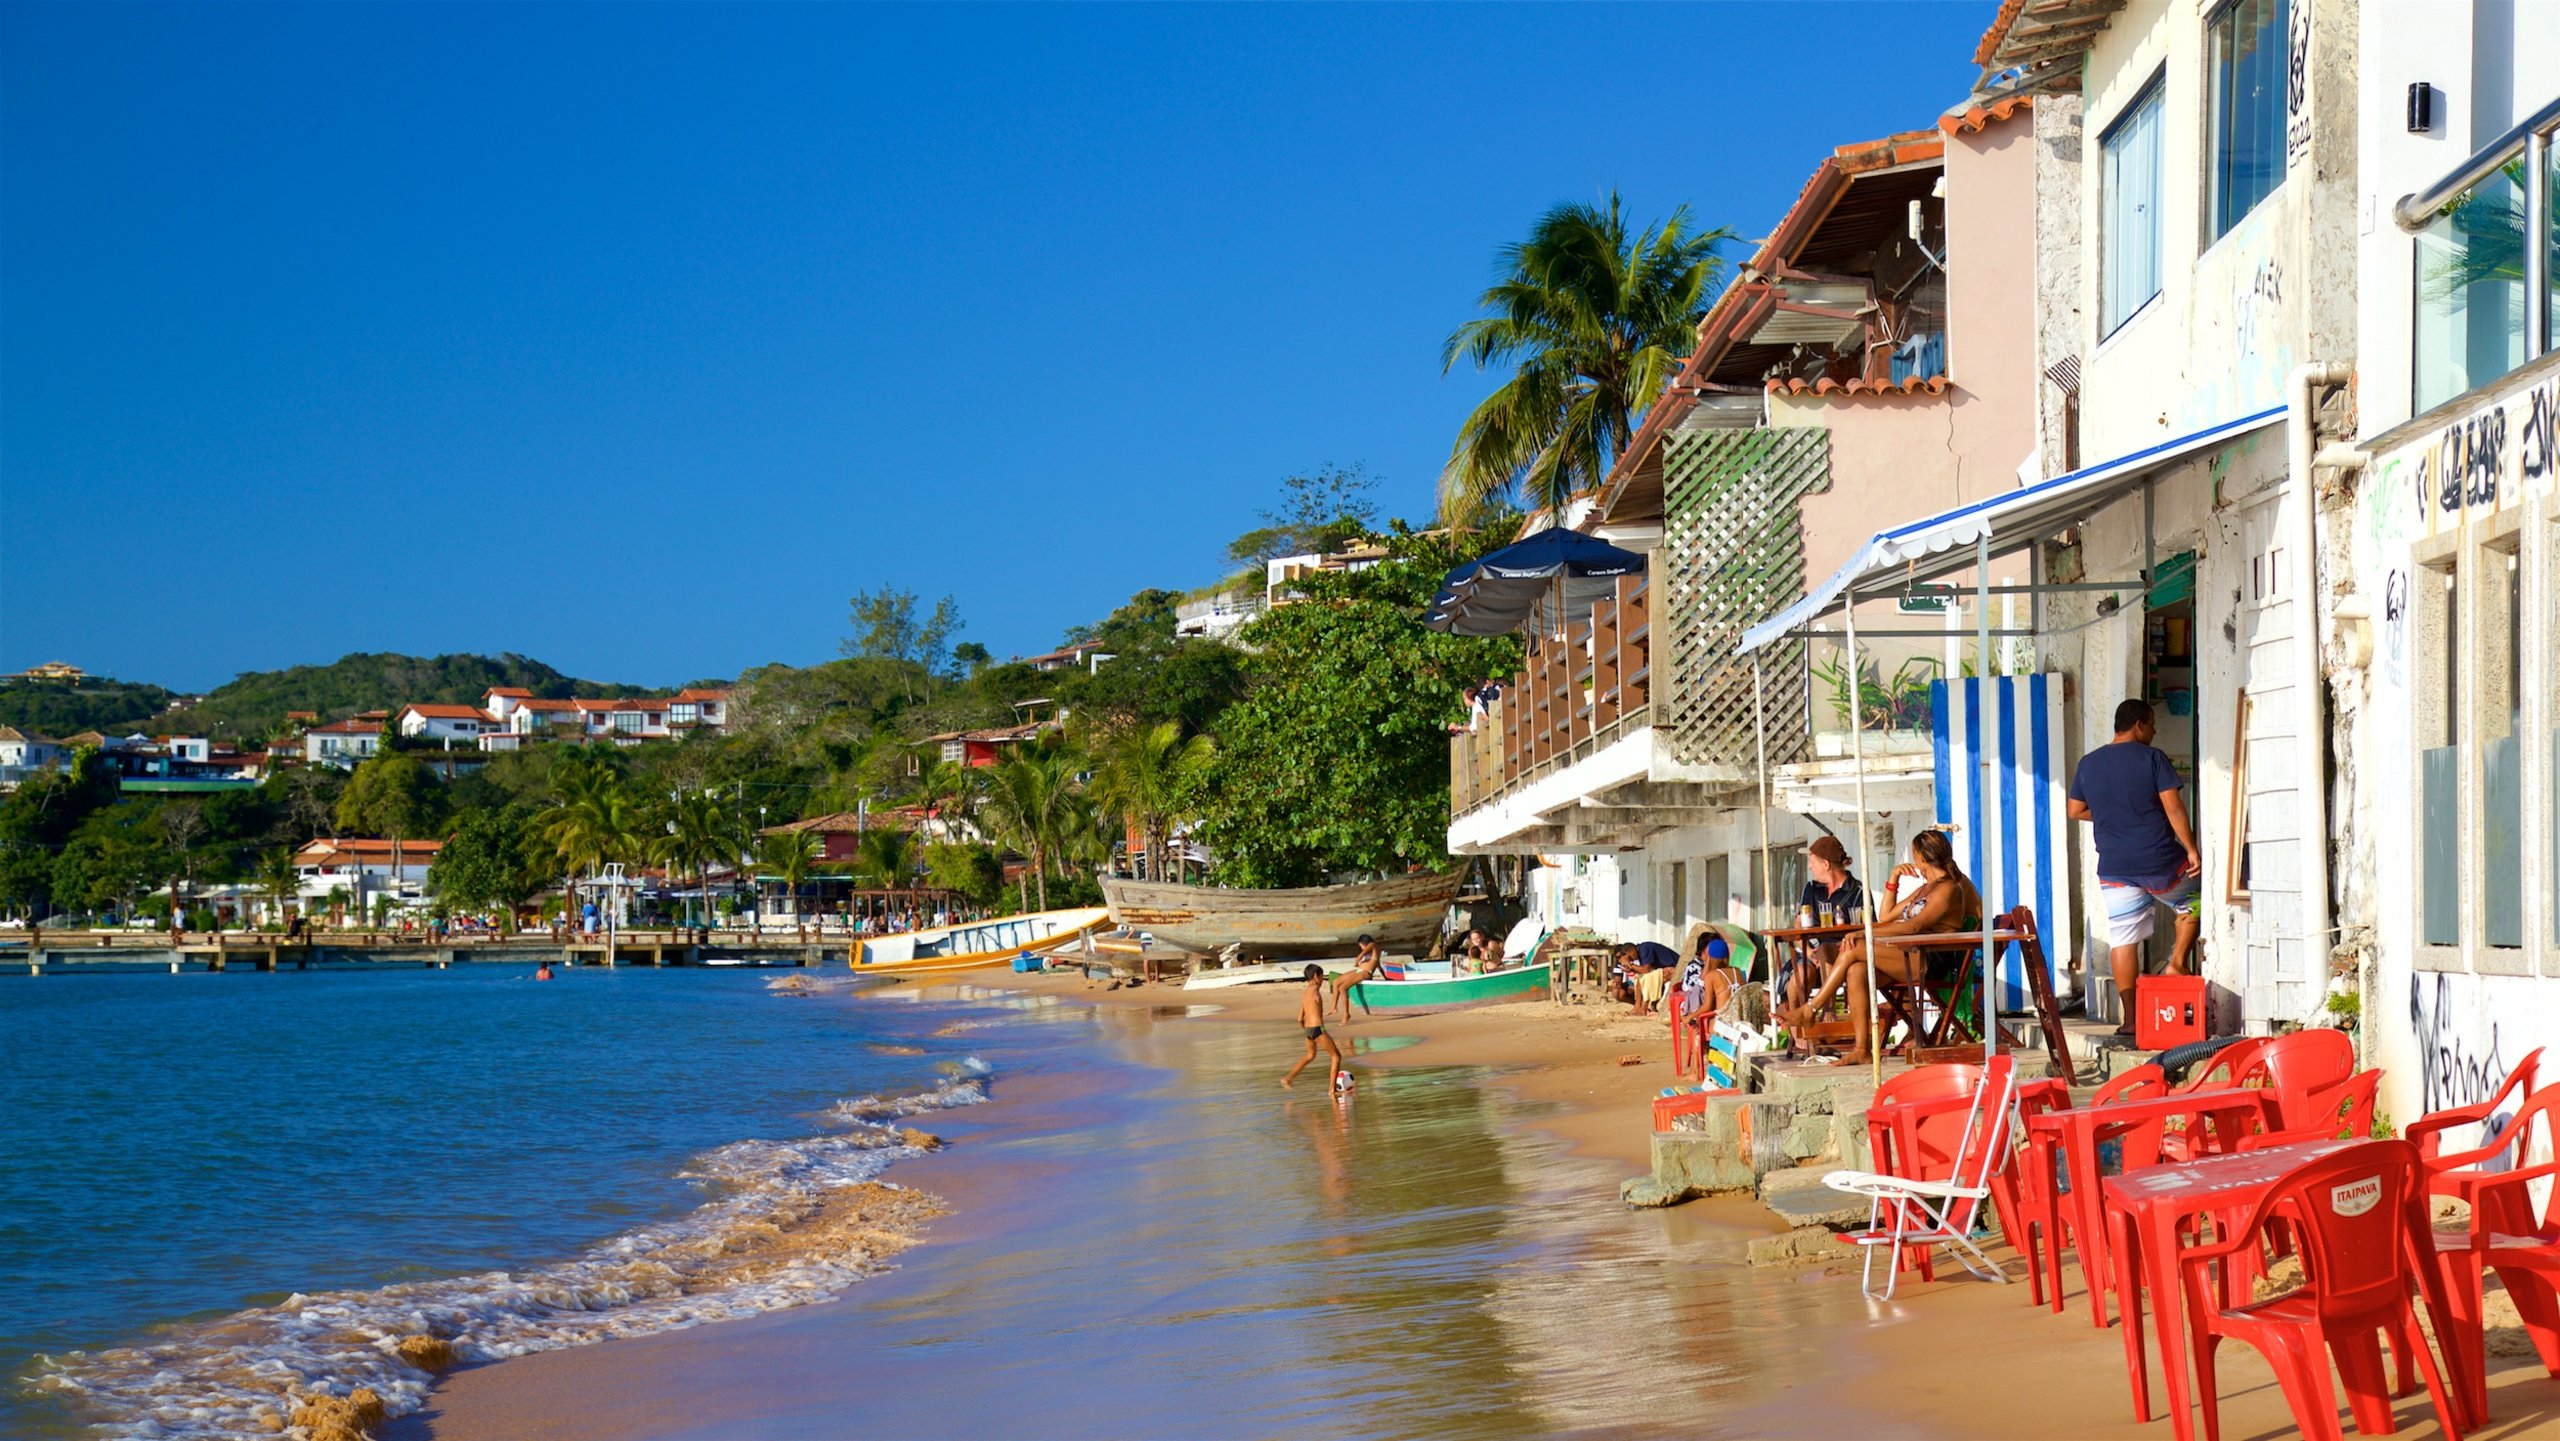 Enjoy a stress-free escape from reality at this pretty beach within easy walking distance of Búzios' town center.